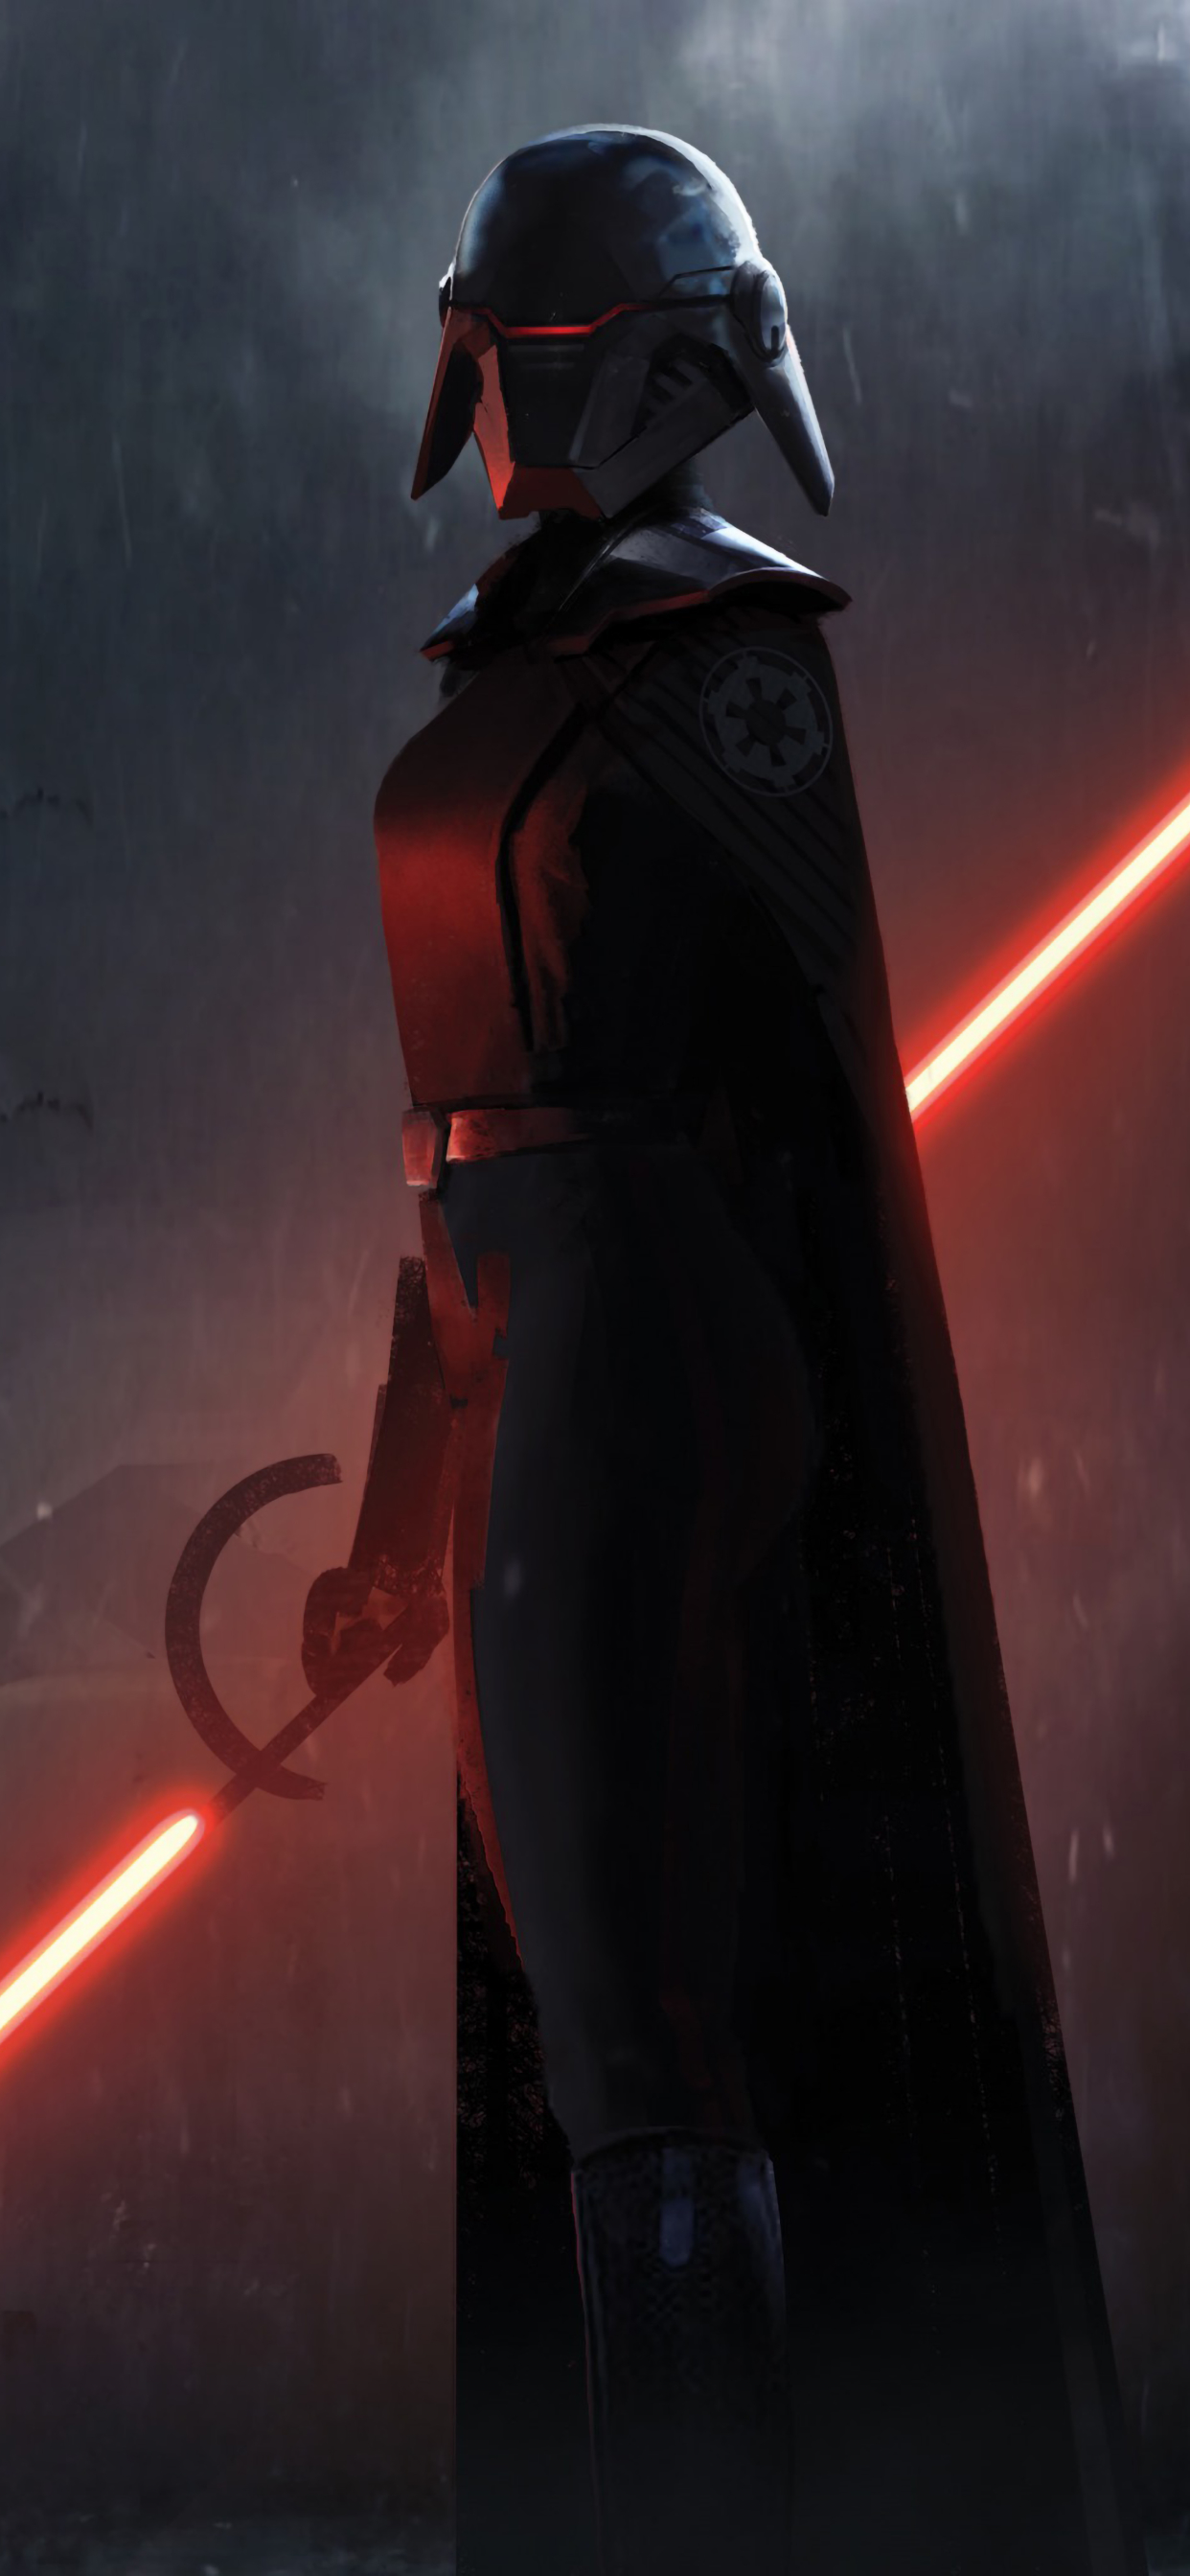 1242x2688 Second Sister Star Wars Jedi Fallen Order Iphone Xs Max Wallpaper Hd Games 4k Wallpapers Images Photos And Background